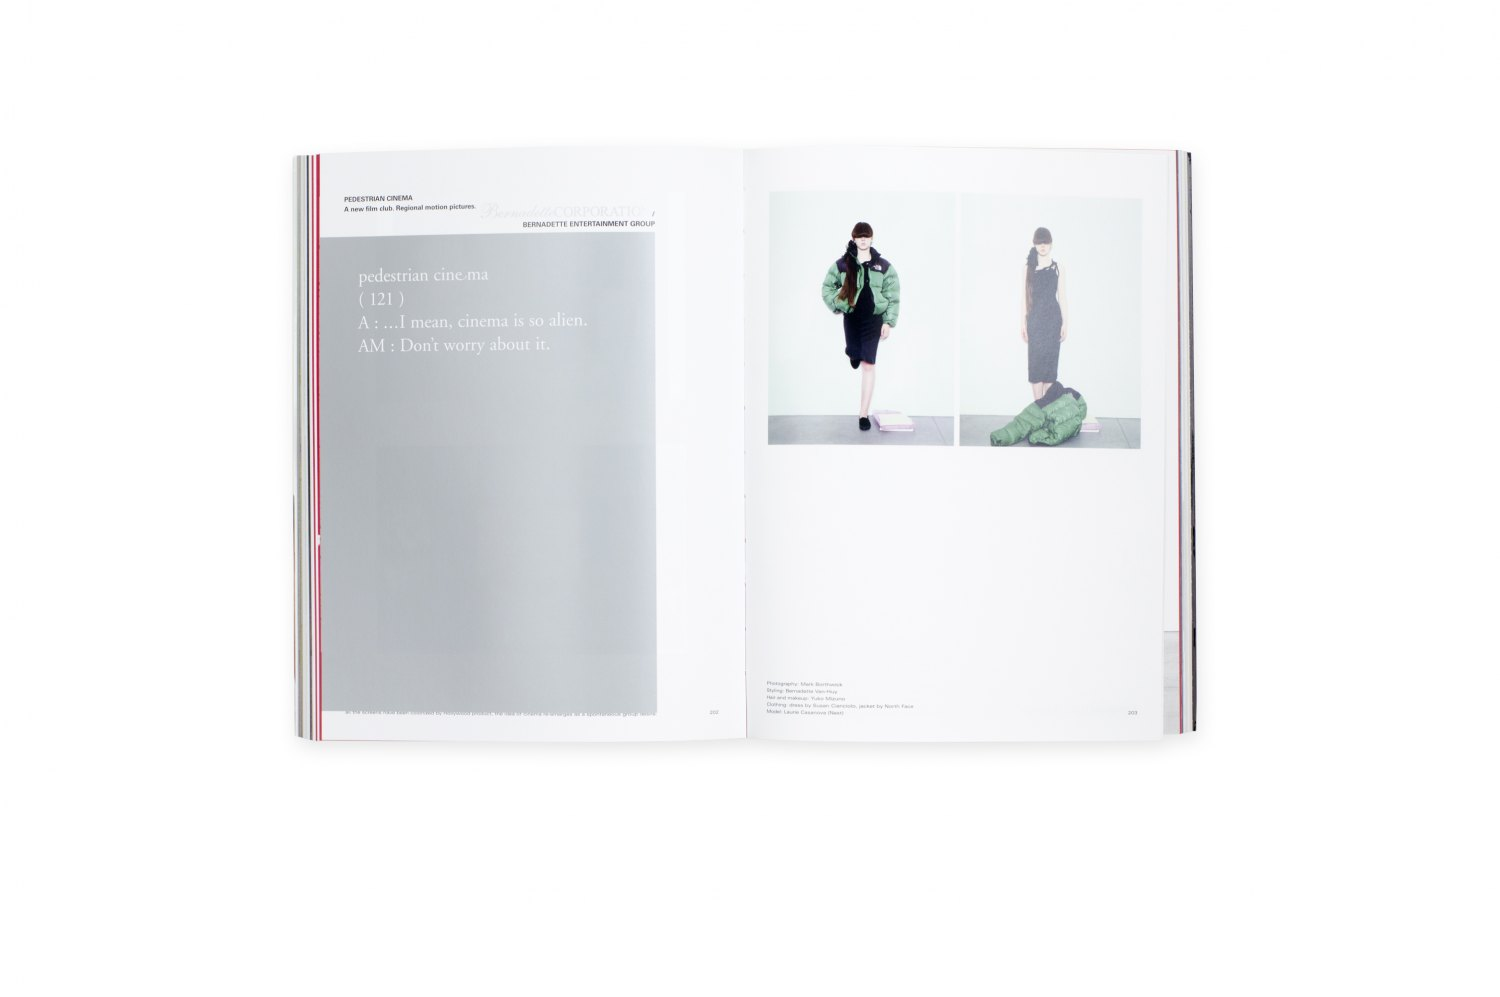 Bernadette Corporation, 2000 Wasted Years  ed. by Bernadette Corporation, Cologne 2014, 400 p. ISBN 978-3-86335-569-2